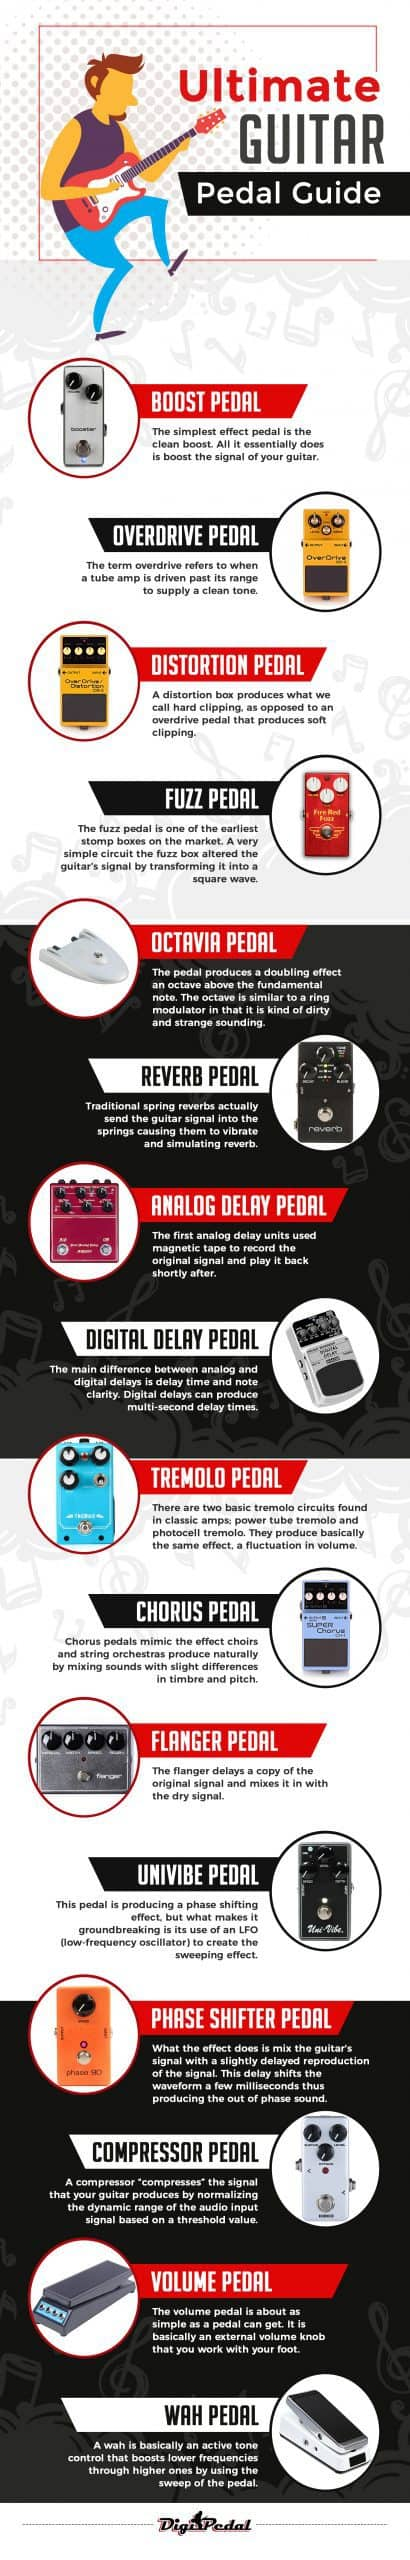 Ultimate-Guitar-Pedal-Guide_2